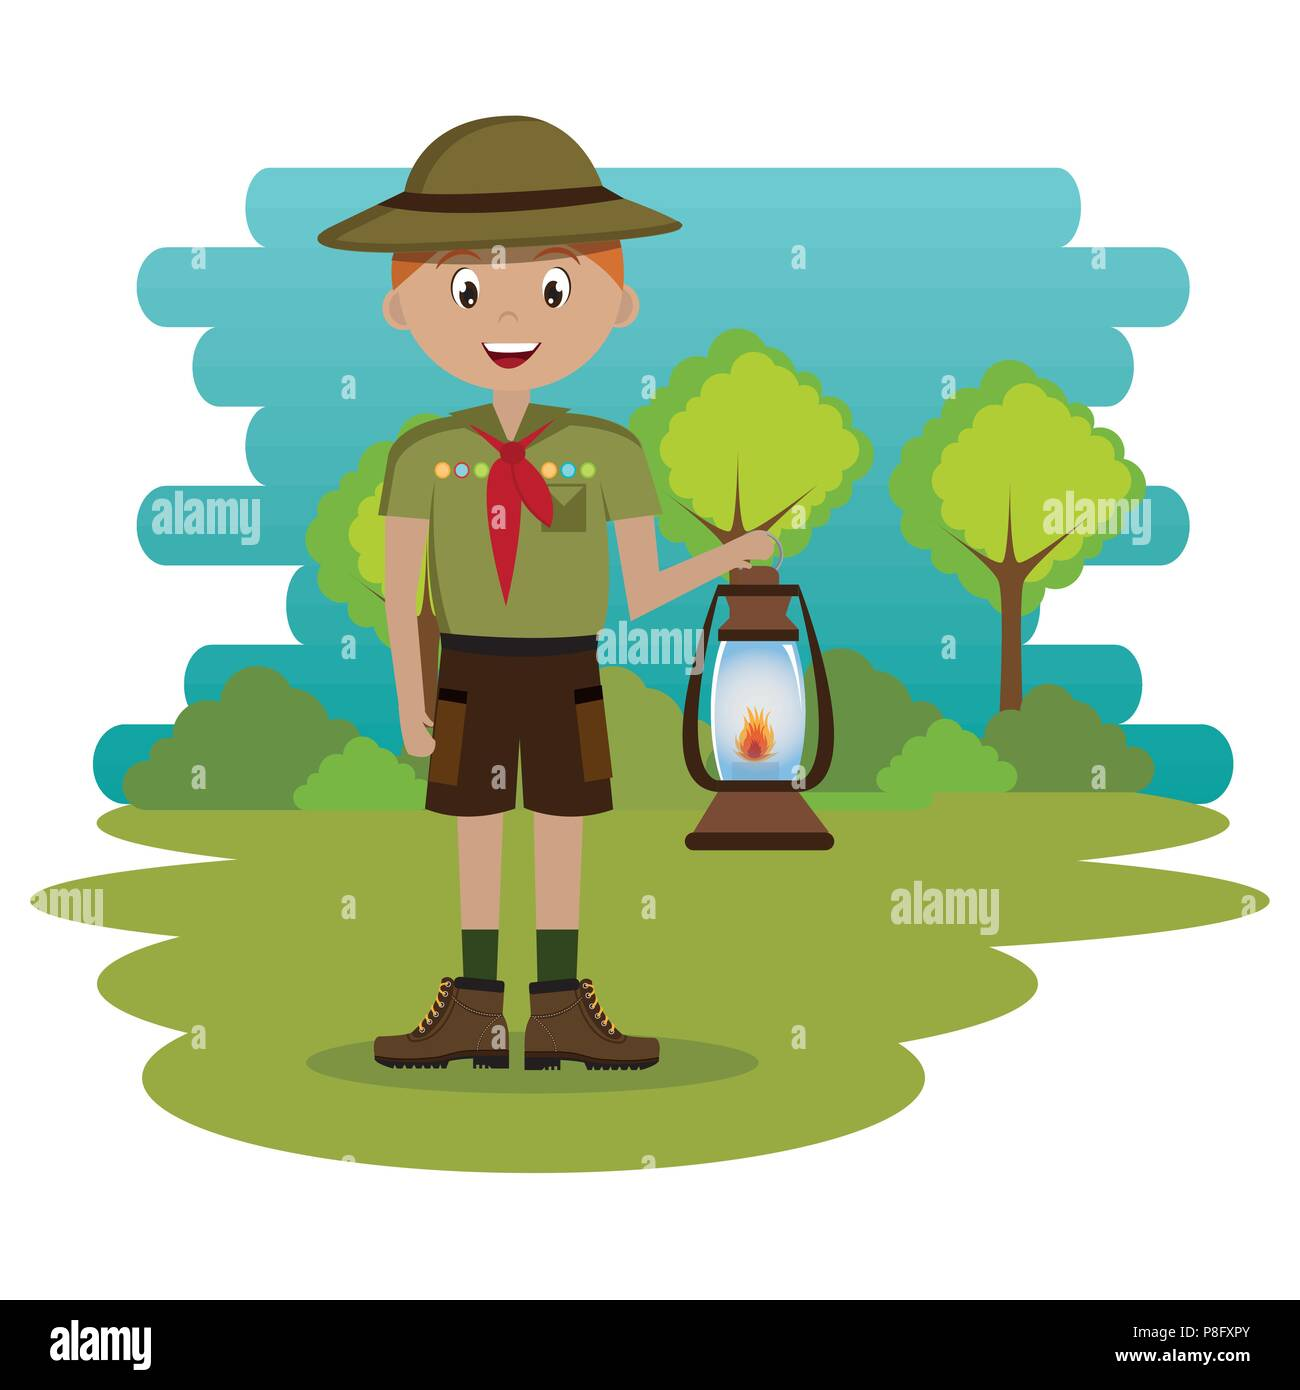 young scout in the camping zone scene - Stock Image